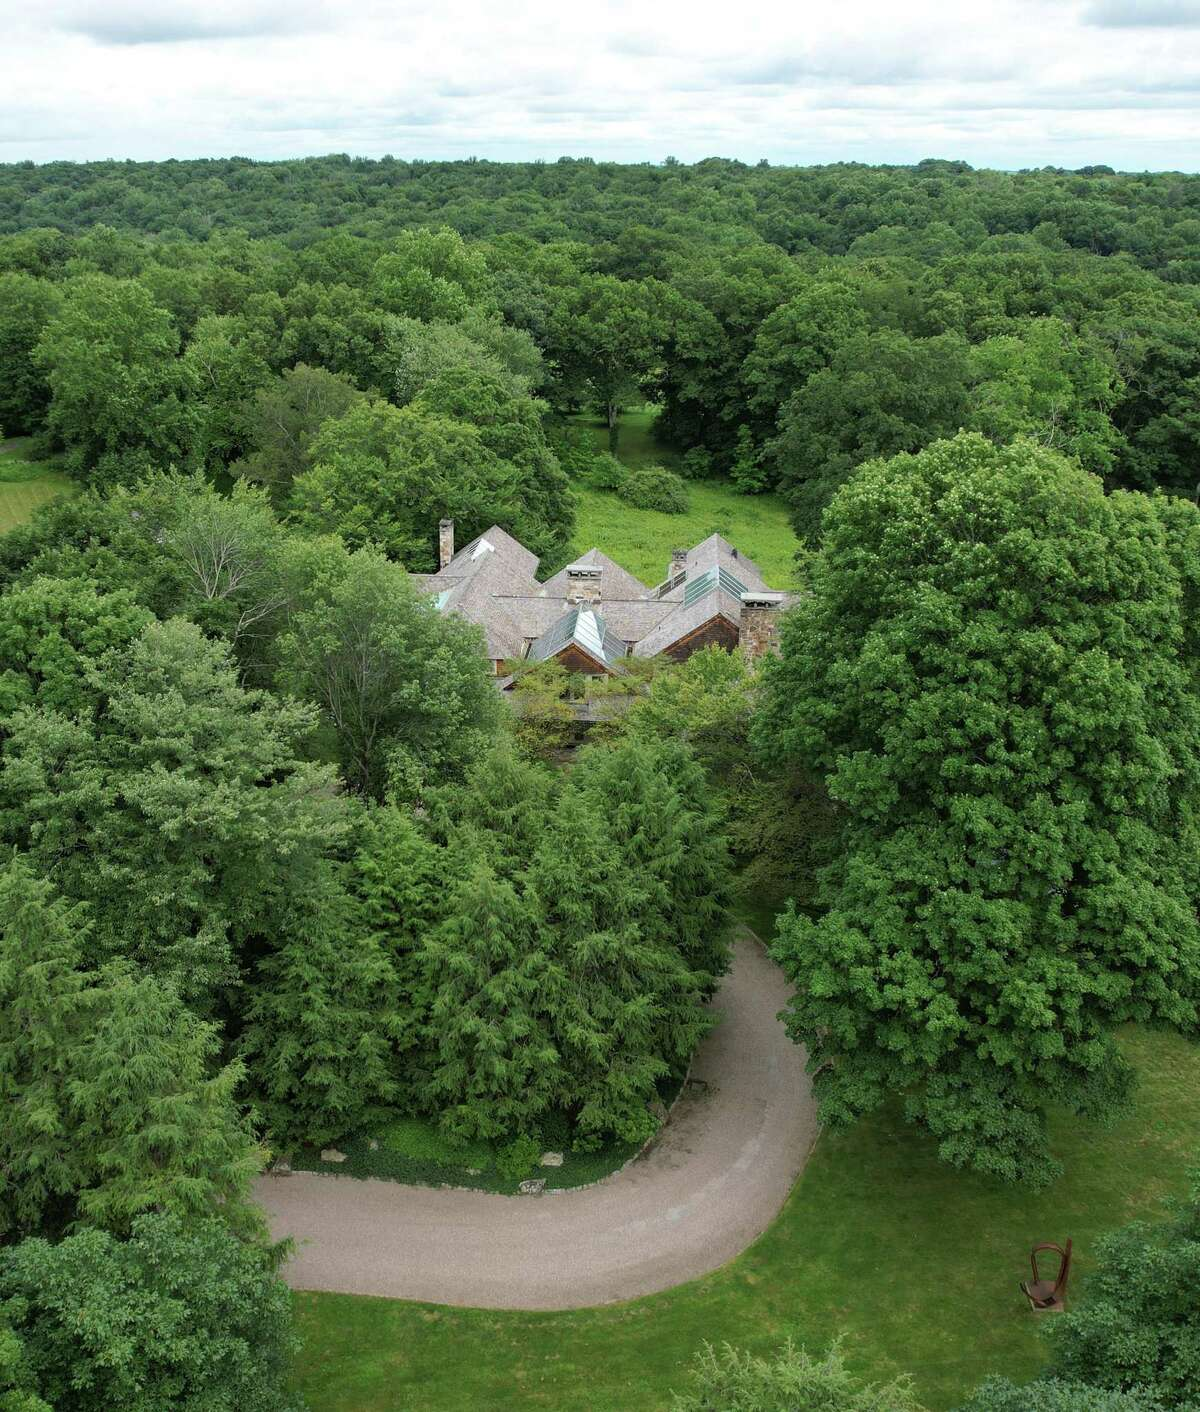 The home at 100 Sterling Rd. in Greenwich, Conn. Monday, July 19, 2021. The home is the site of a 2009 murder and was listed for sale at $35 million.